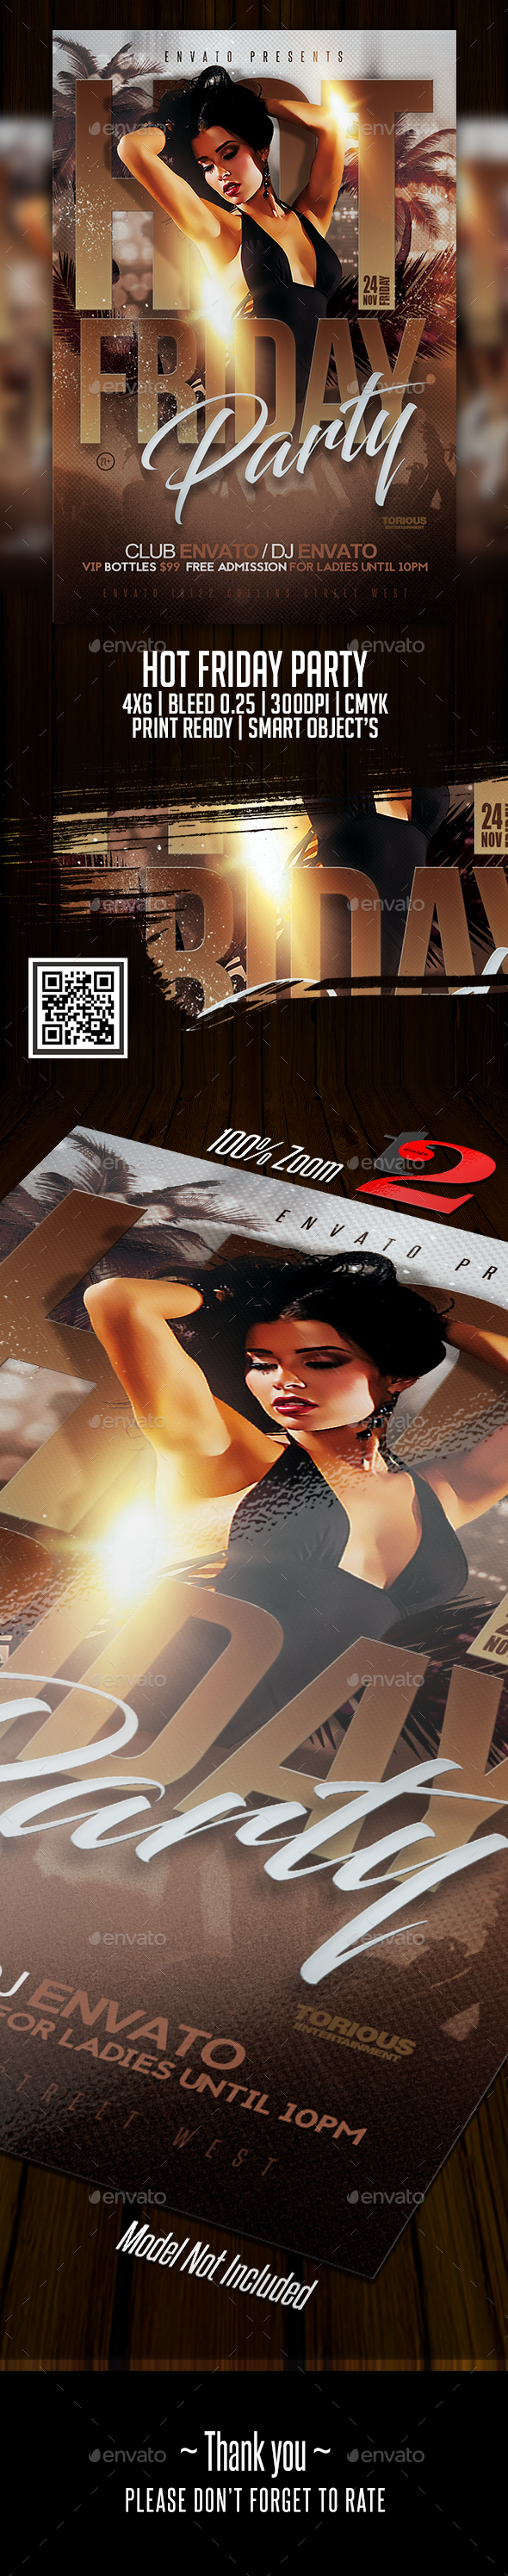 Hot Friday Party Flyer Template - Clubs & Parties Events